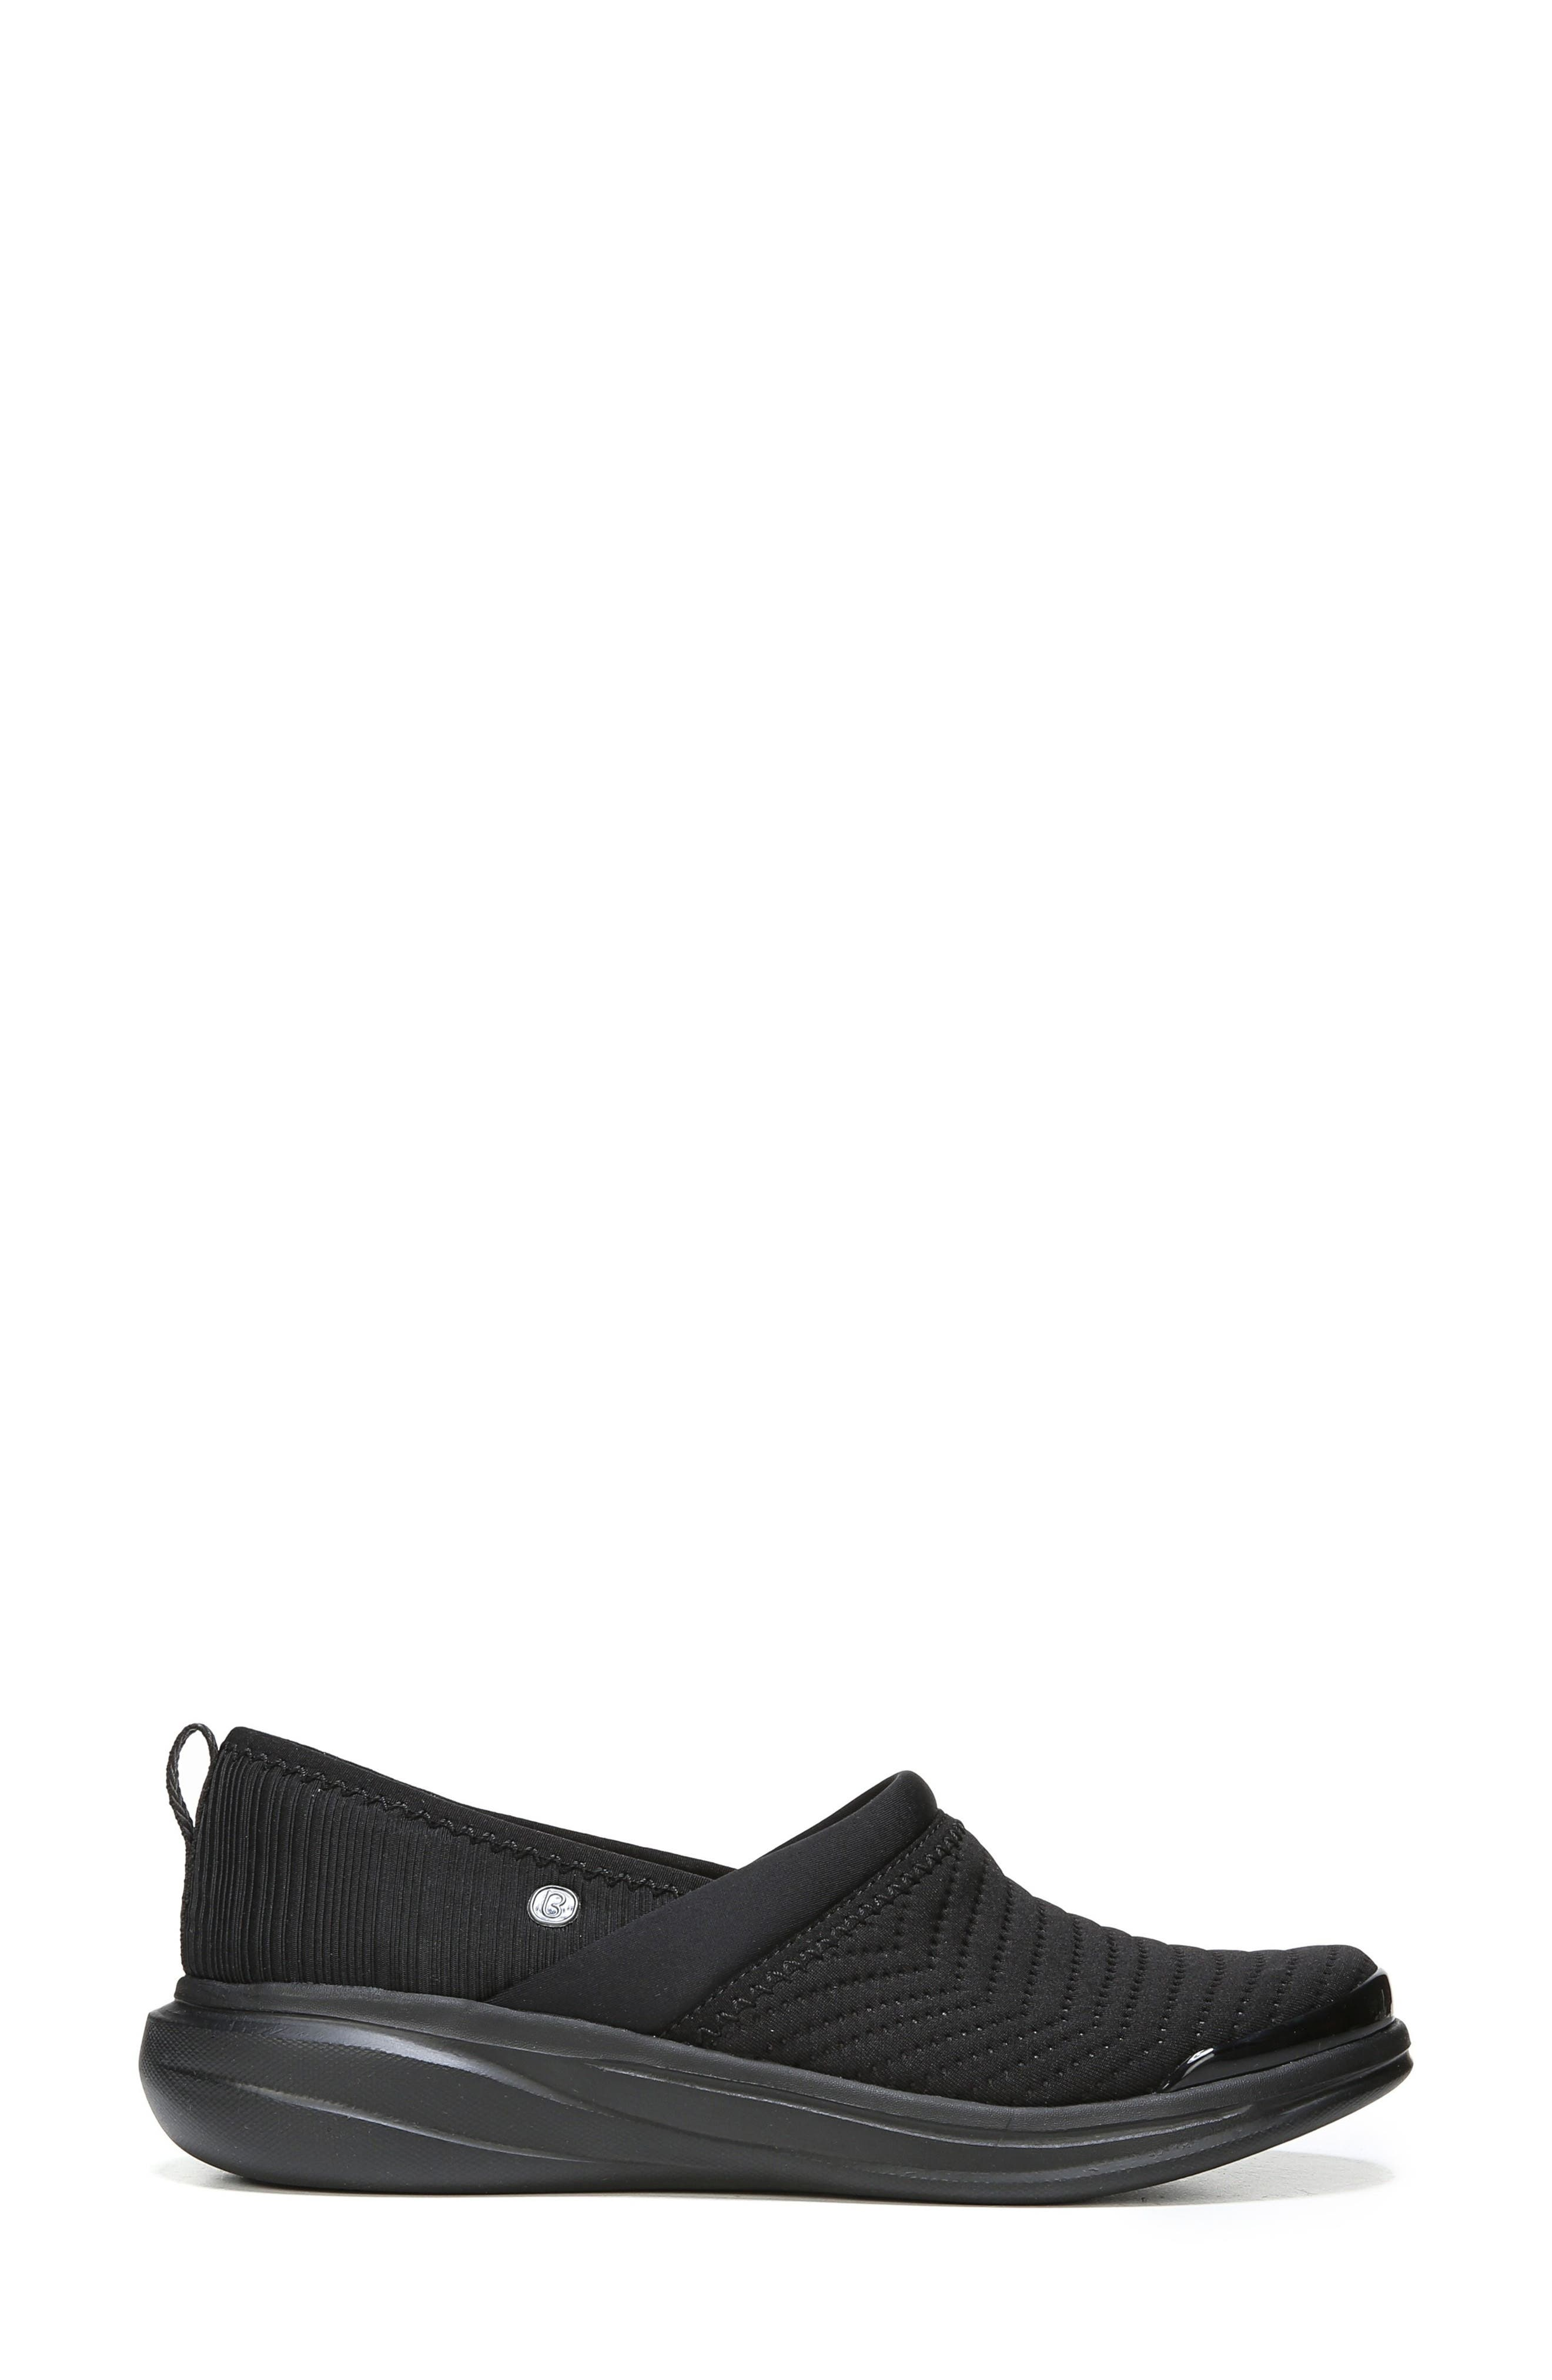 Coco Slip-On Sneaker,                             Alternate thumbnail 3, color,                             Black Fabric